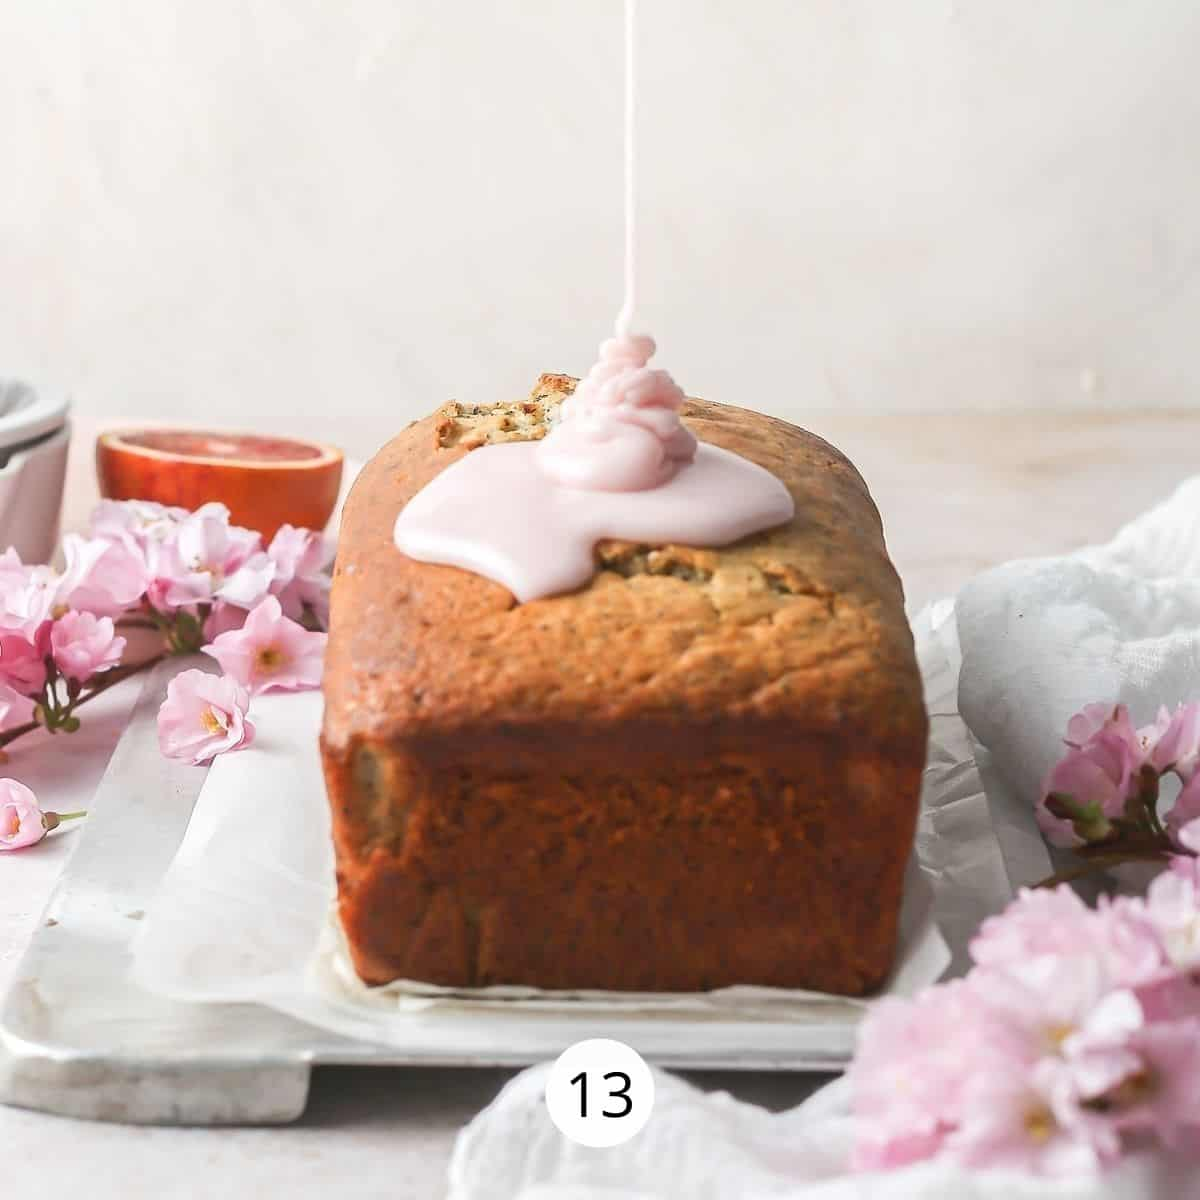 Drizzle being poured onto a loaf cake on a serving plate